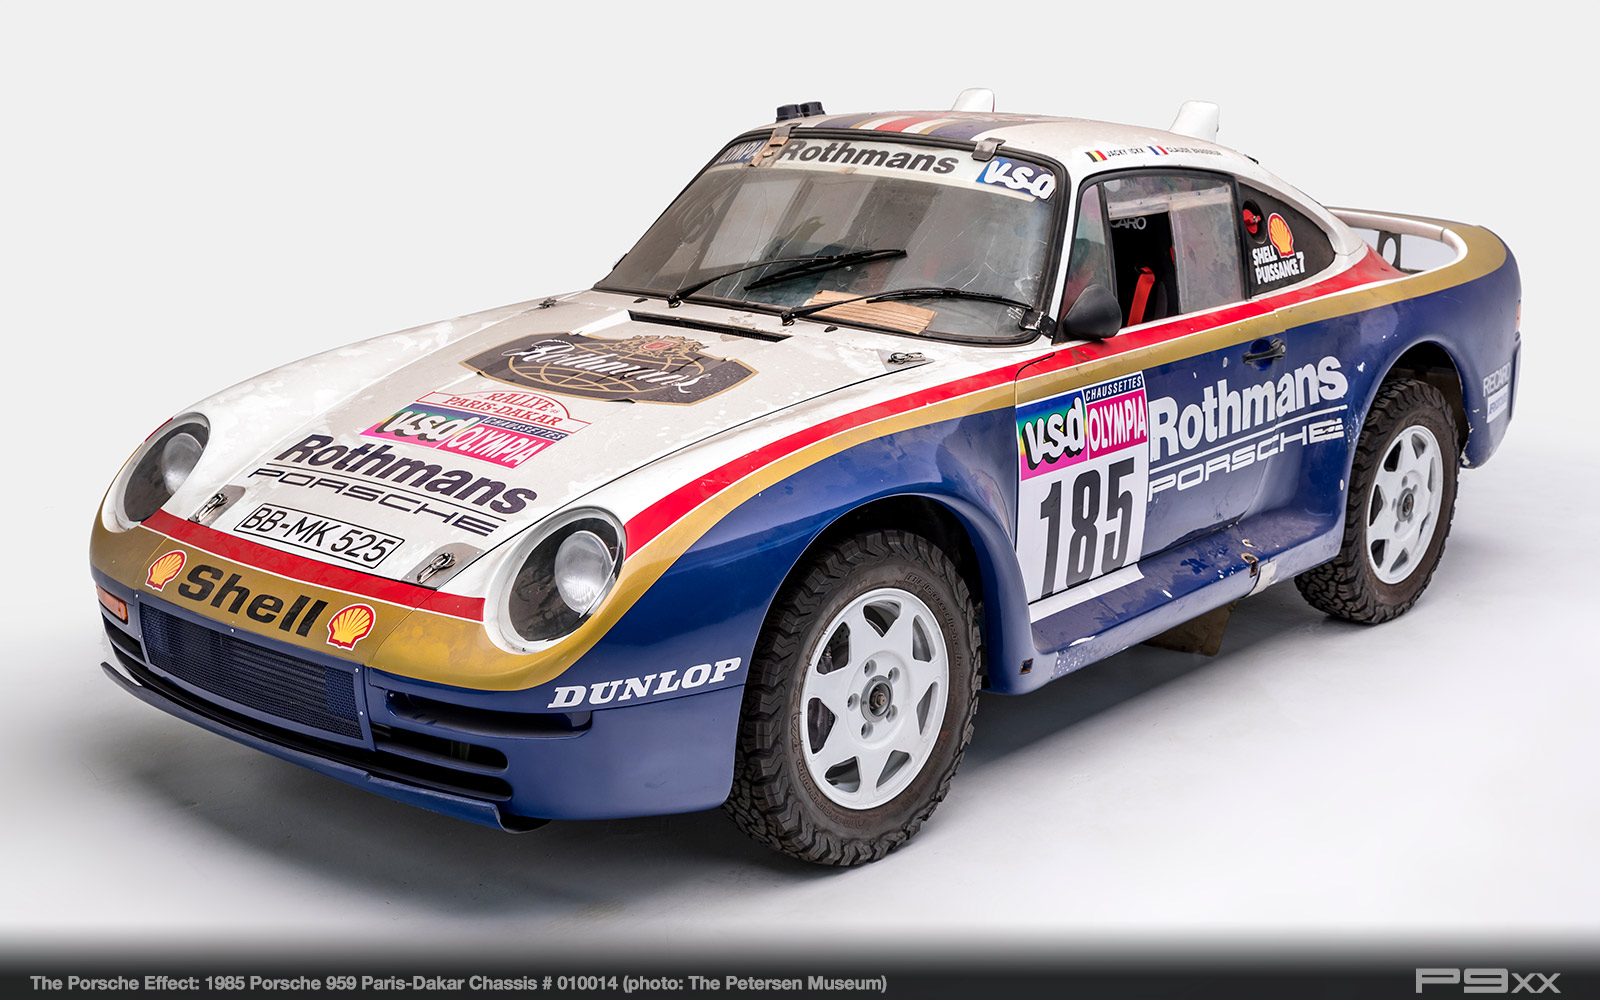 1985-959-Paris-Dakar-Chassis-010014-Petersen-Automotive-Museum-The-Porsche-Effect-427